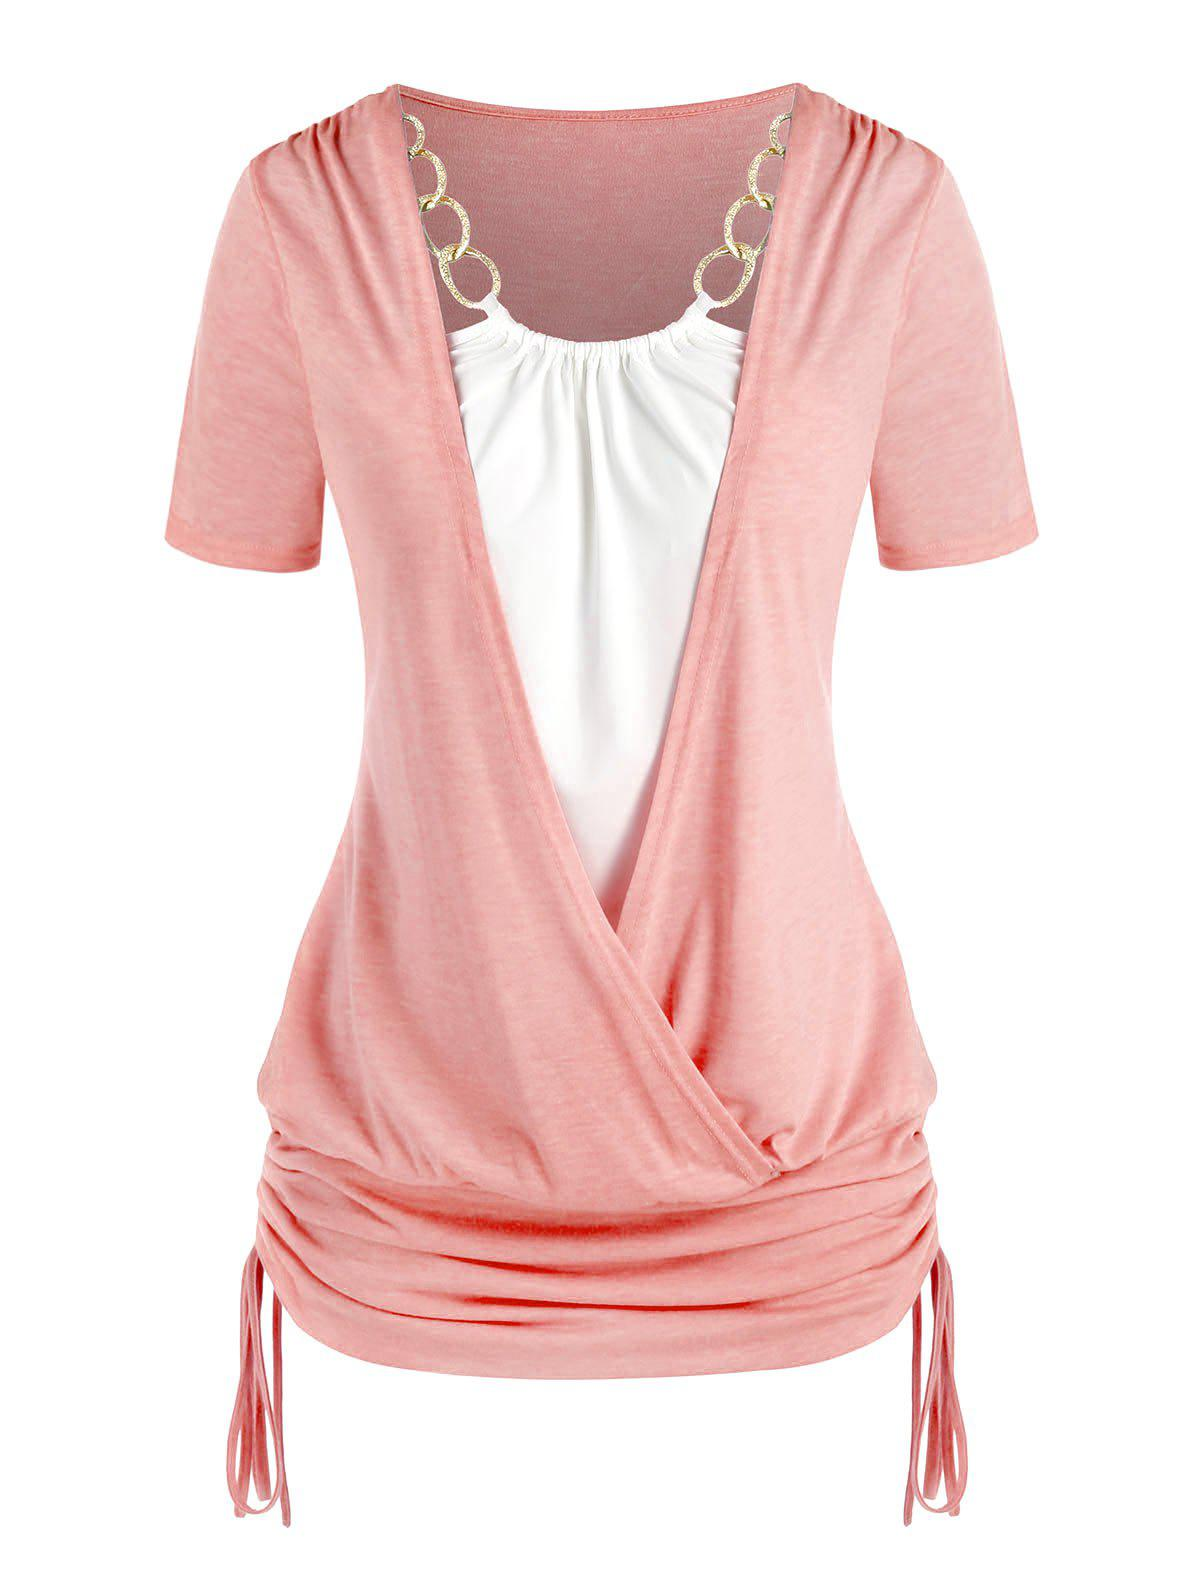 Plus Size Chains Surplice Cinched Tie Short Sleeve Tee - LIGHT PINK 2X